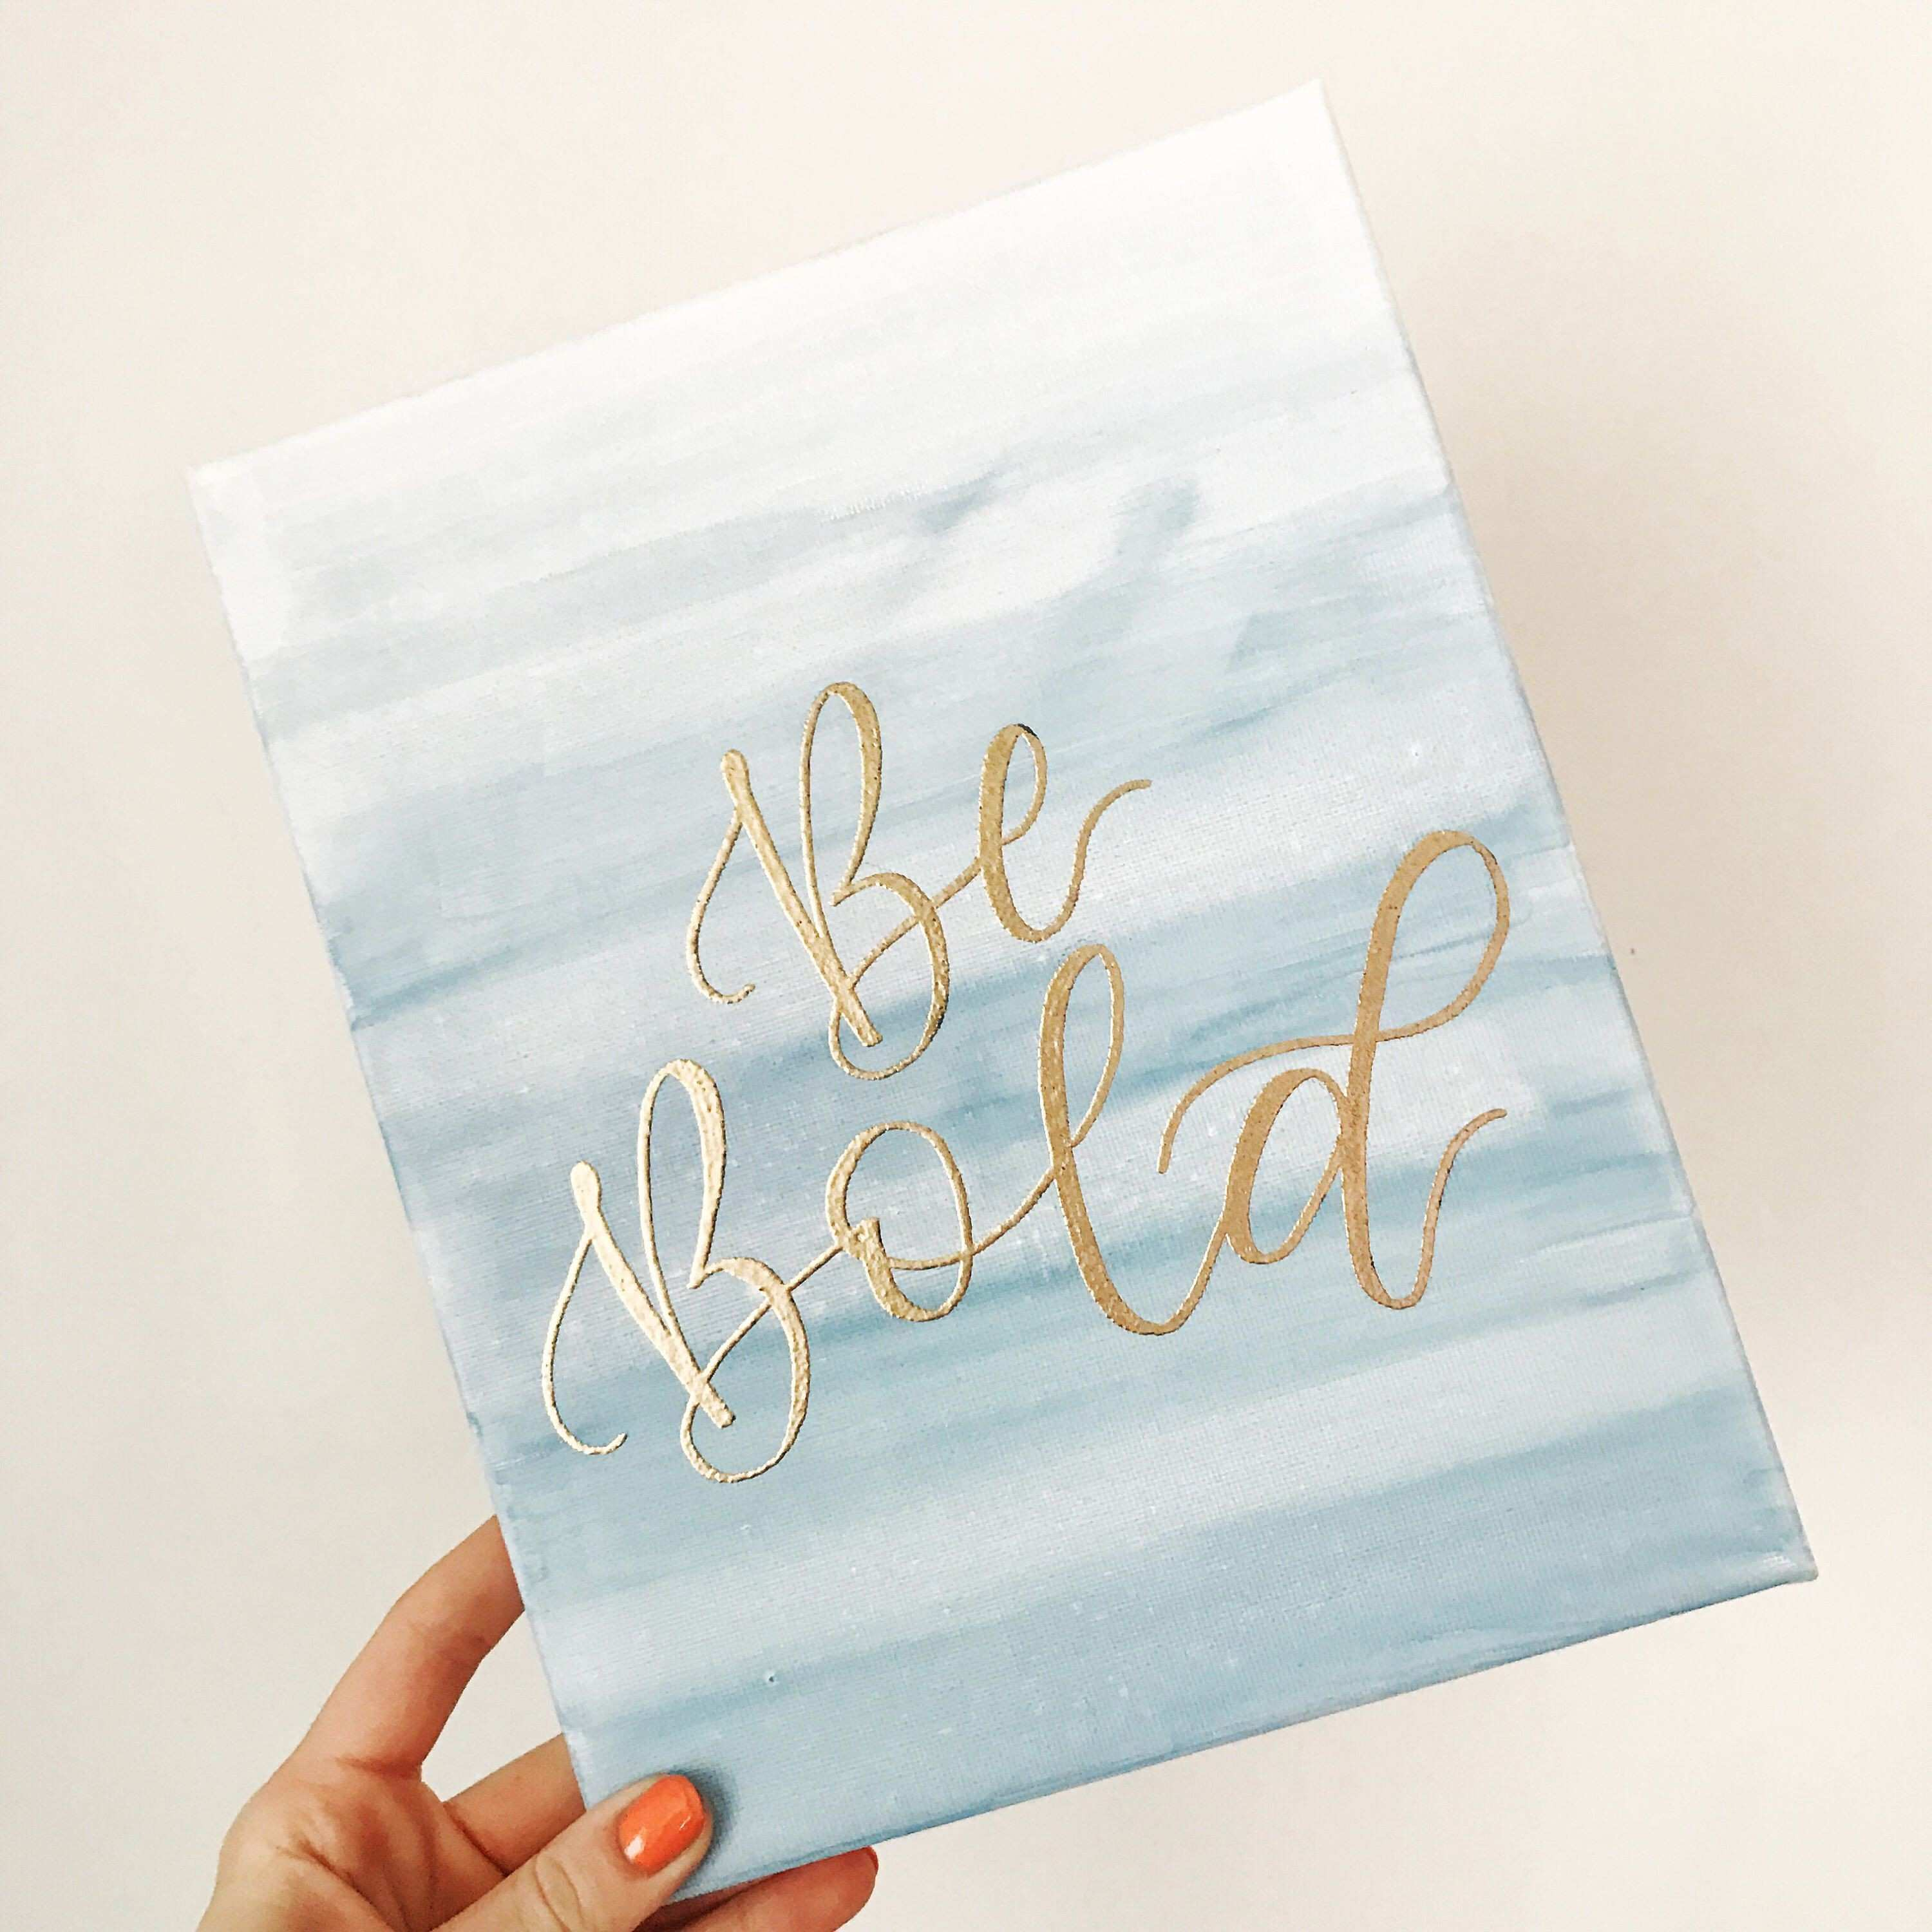 Gray & Gold Be Bold Watercolor Painting Canvas Motivational Art